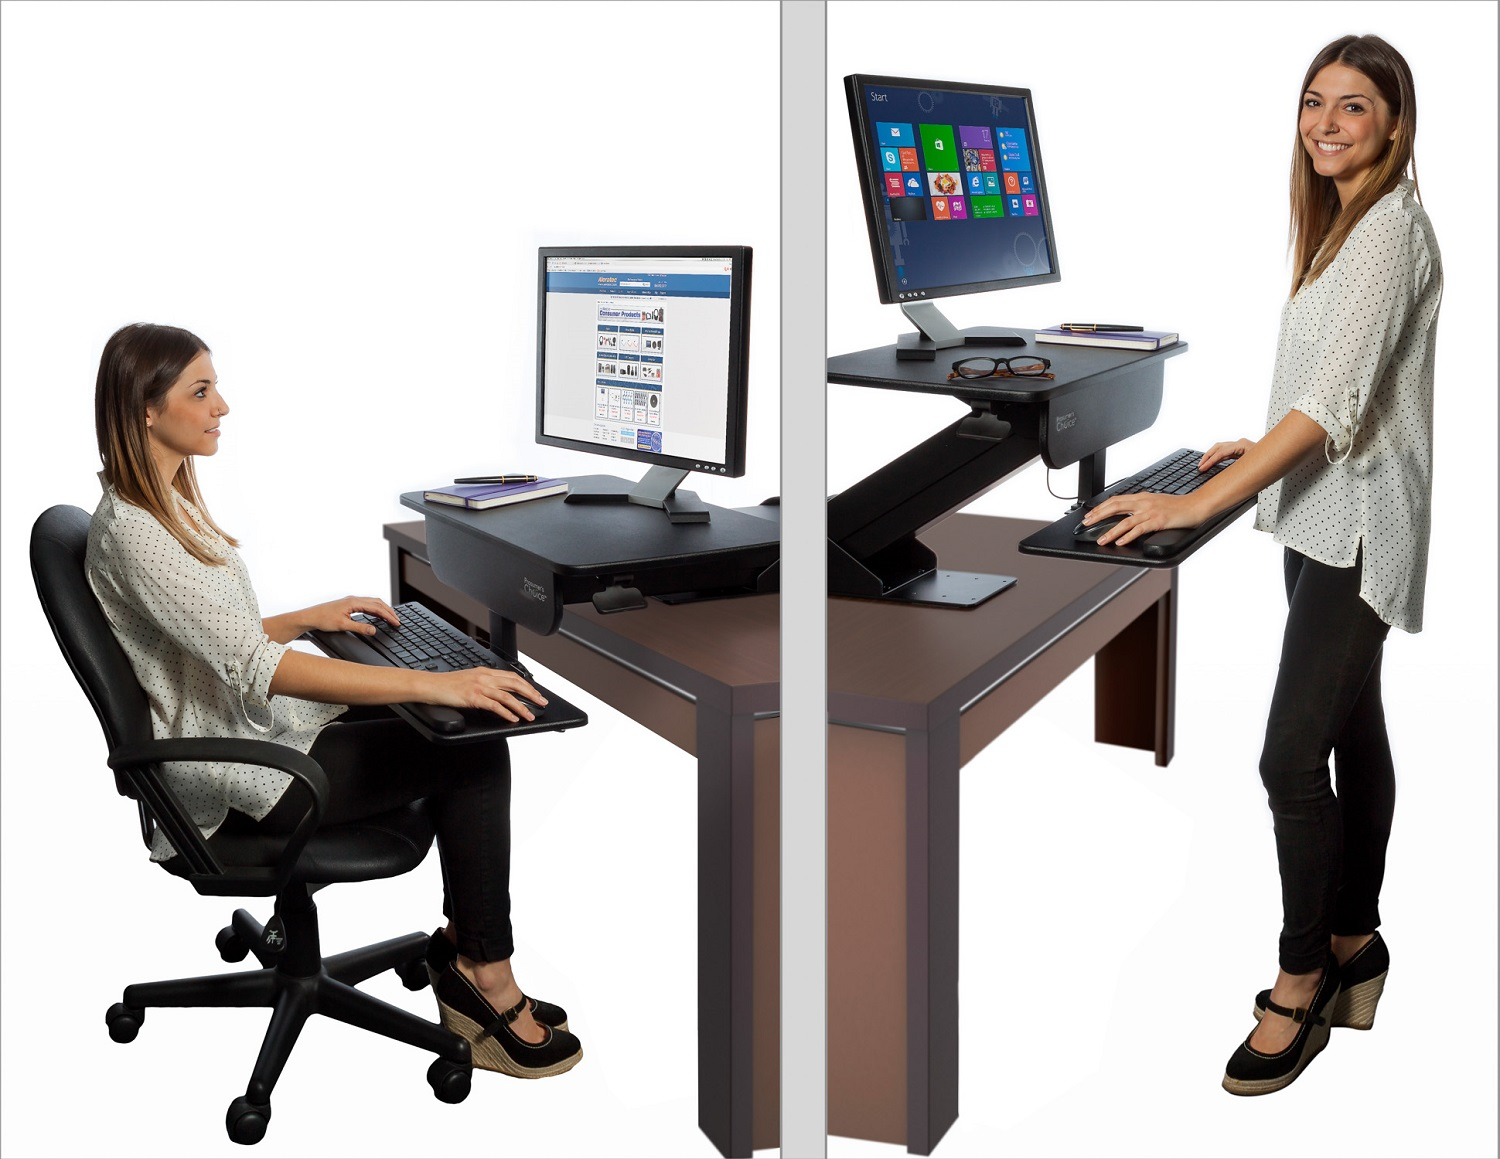 Adjustable height gas spring easy lift standing desk sit stand up desk computer workstation